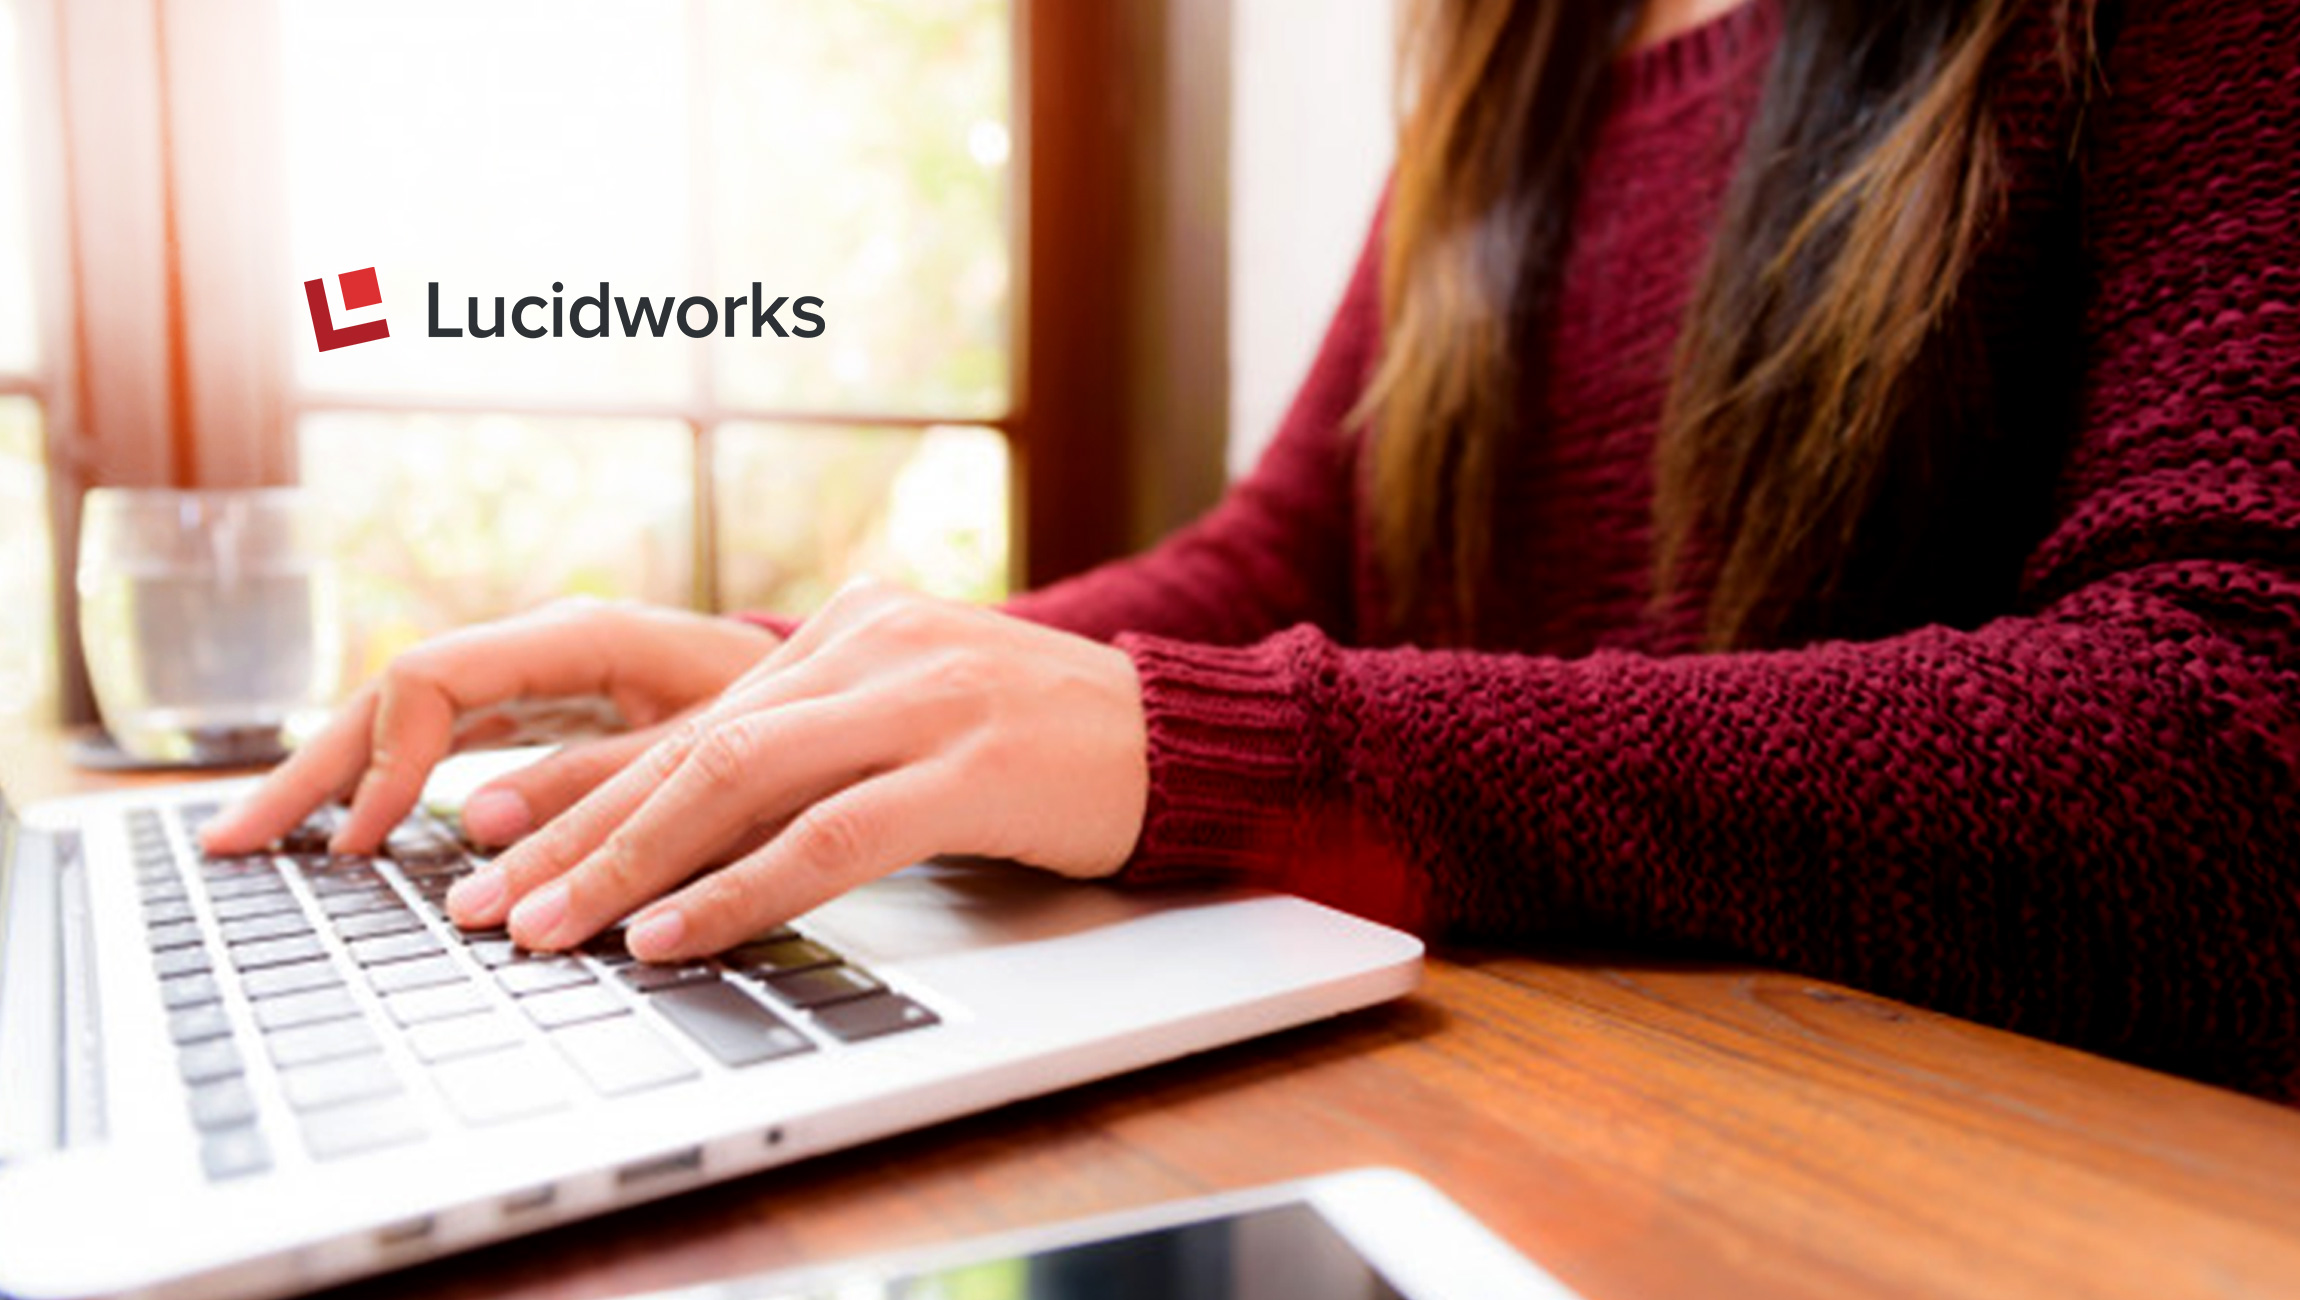 Lucidworks Announces Fusion 4.2 With New Predictive Merchandising Feature for Digital Commerce Customers